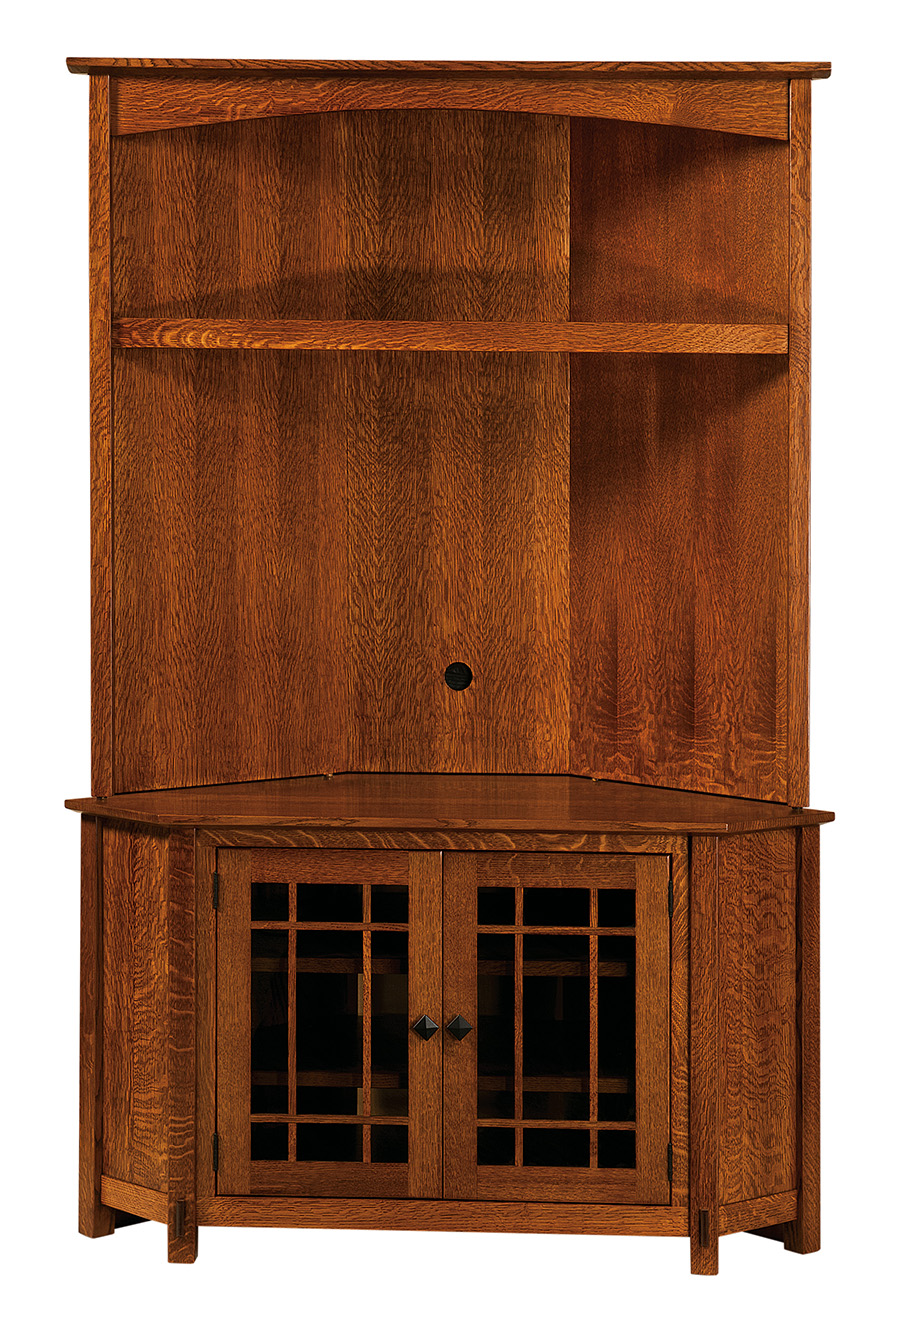 image construct ideally elena of apoc hutch suited tv white small armoire doors by with corner